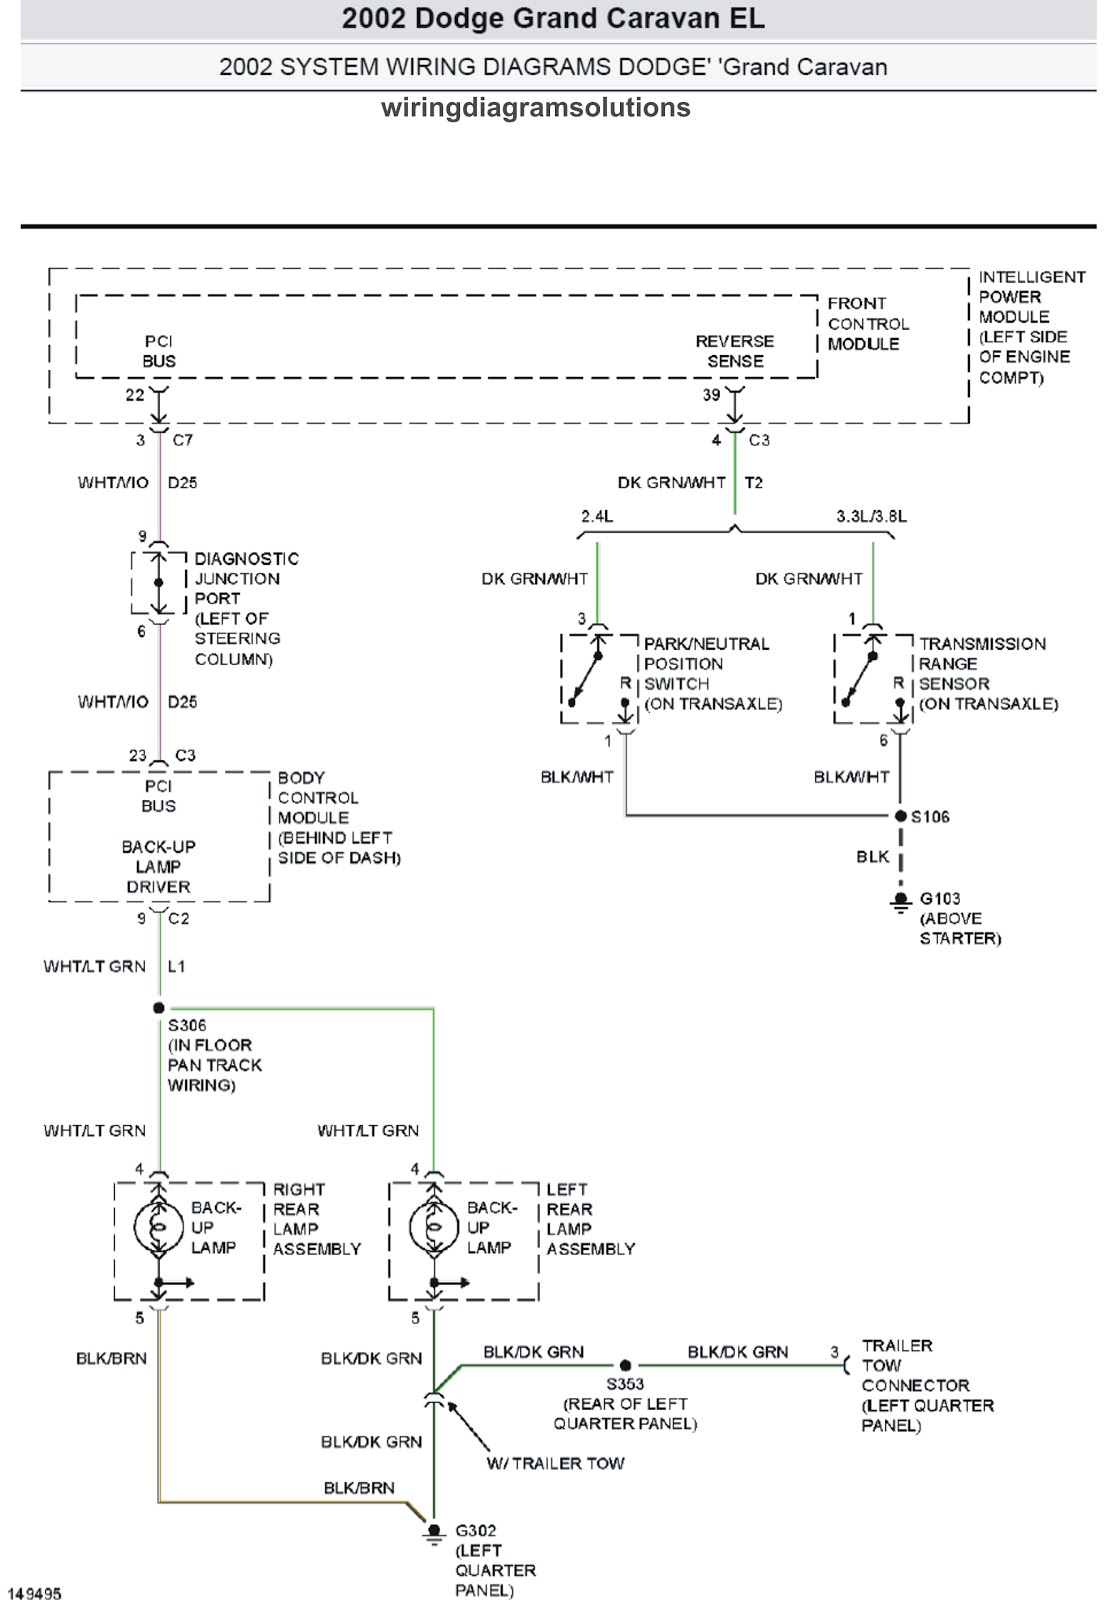 2002 Dodge Grand Caravan EL System Wiring Diagrams